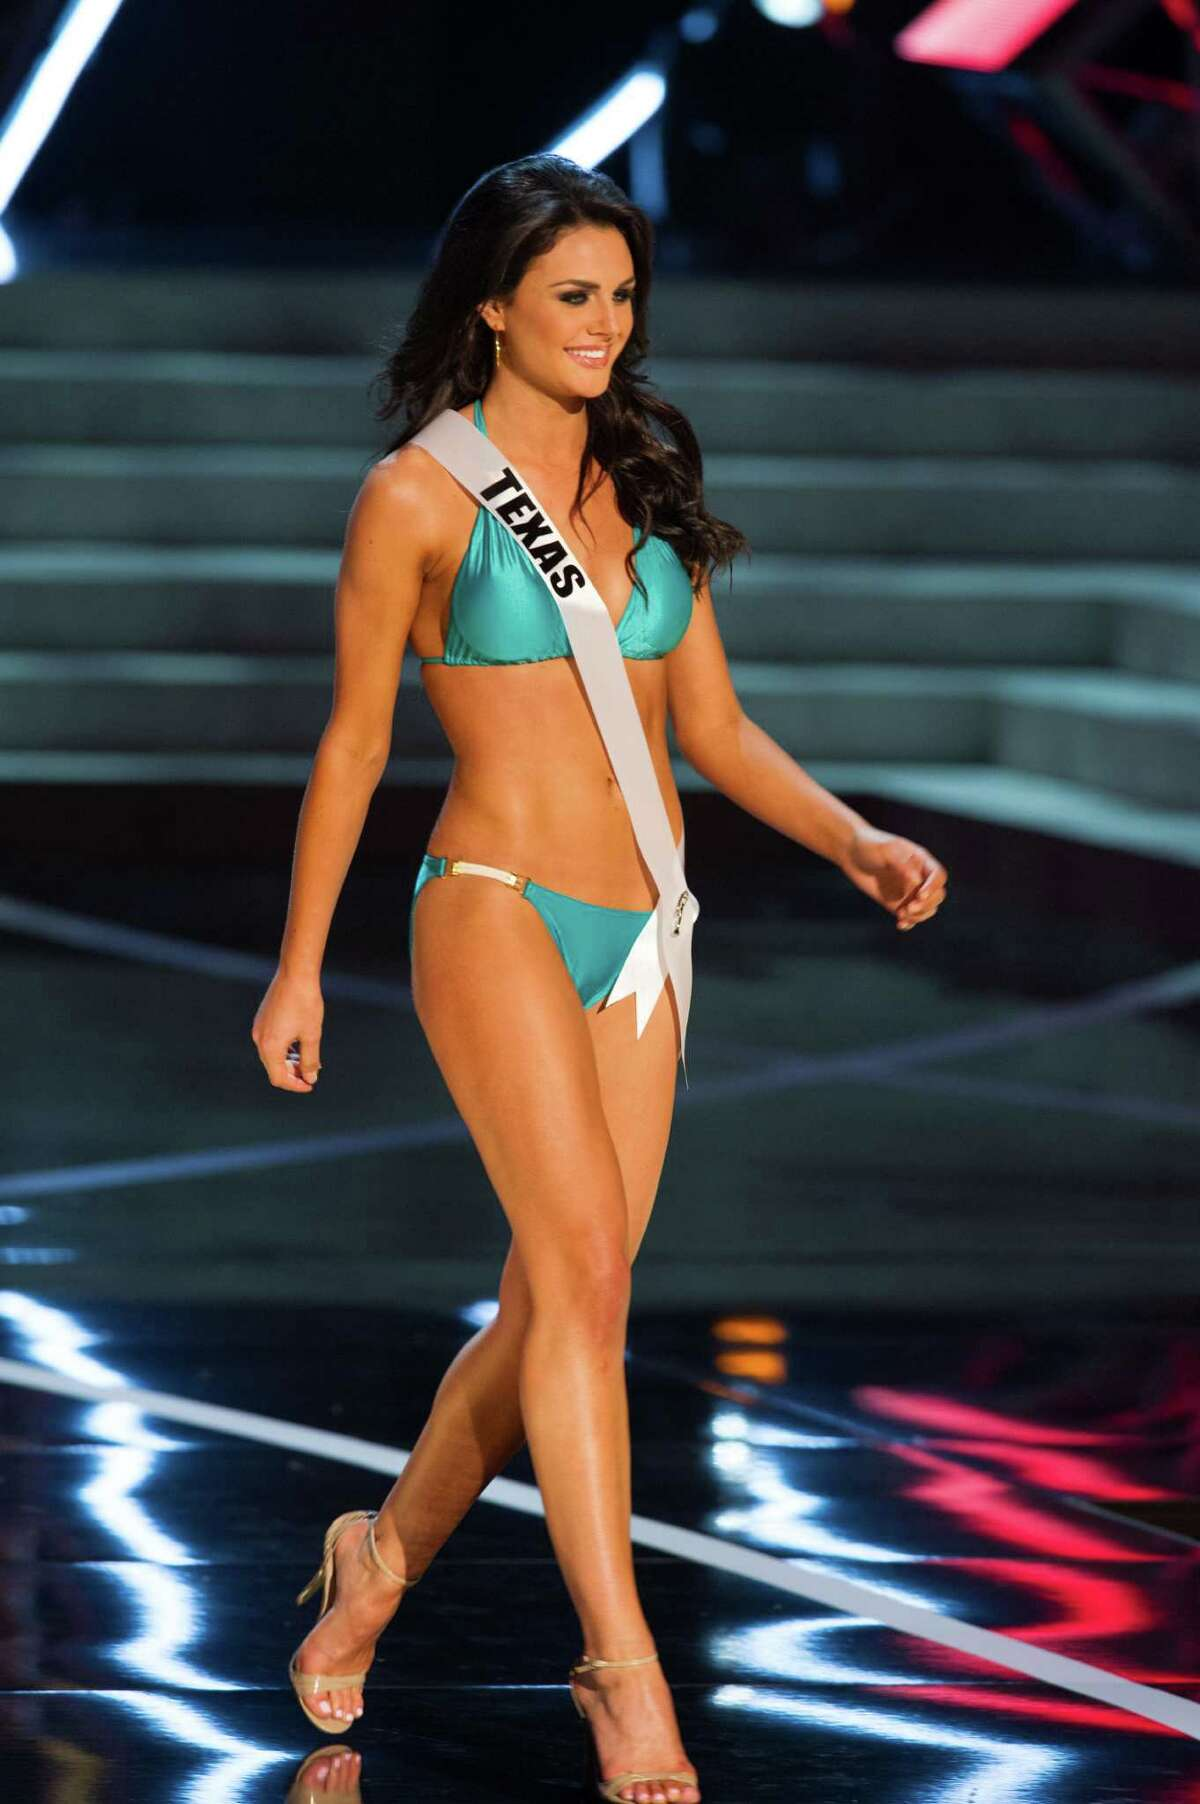 In this photo provided by the Miss Universe Organization, Miss Texas USA 2013, Ali Nugent, competes in her swimsuit during the 2013 Miss USA Competition Preliminary Show in Las Vegas on Wednesday June 12, 2013. She will compete for the title of Miss USA 2013 and the coveted Miss USA Diamond Nexus Crown on June 16, 2013.